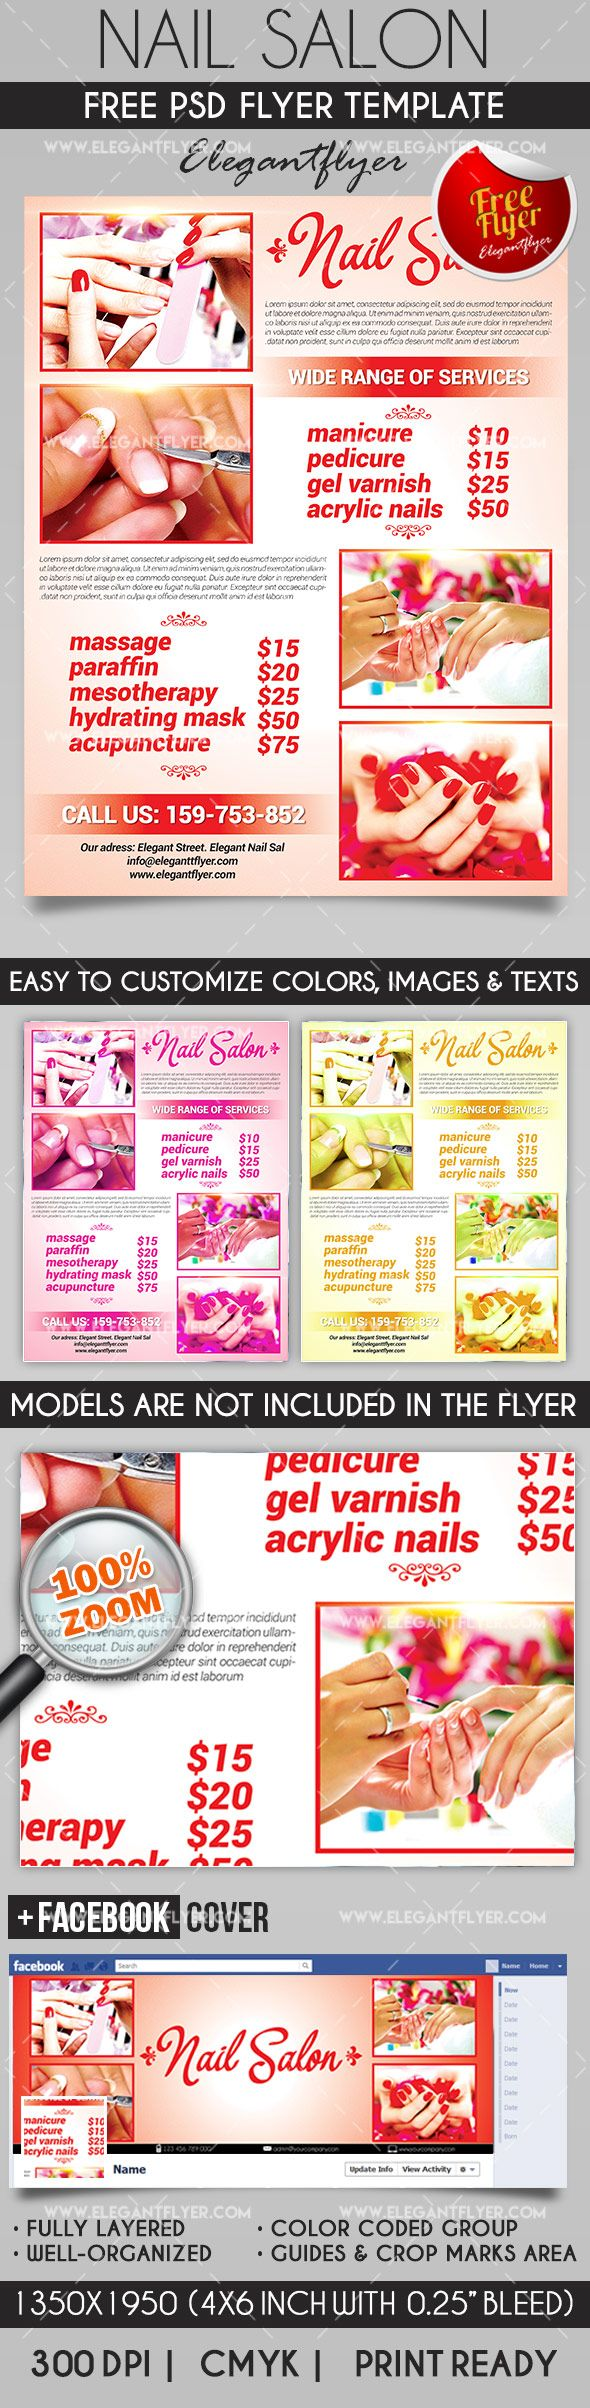 free best nails salon psd template flyers pinterest nail salons psd templates and salons - Nail Brochure Templates Free